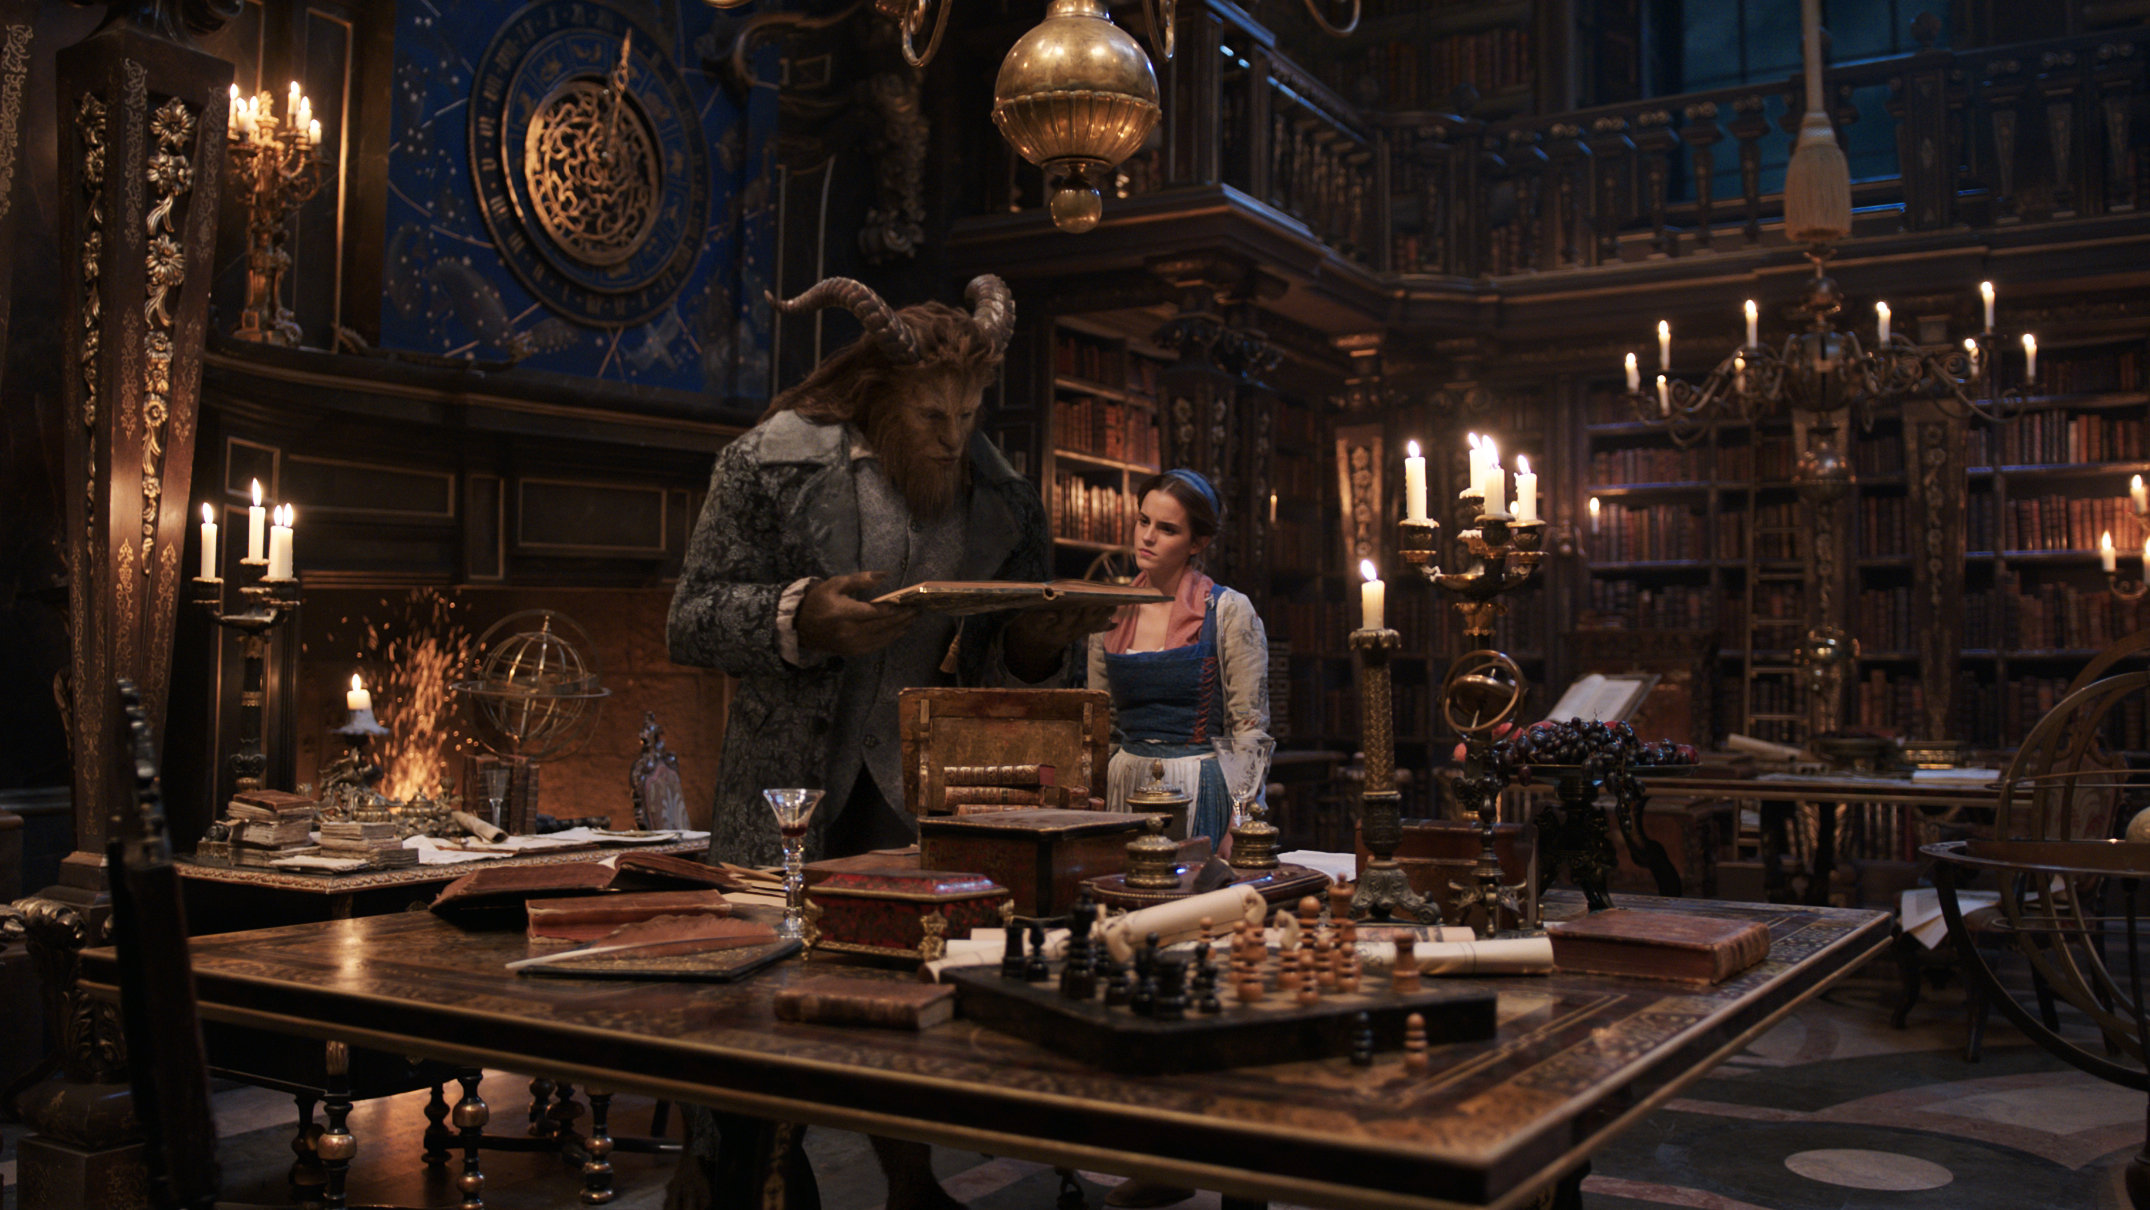 Disneys Beauty and the Beast is a liveaction retelling of the studios animated classic which refashions the classic characters from the tale as old as time for